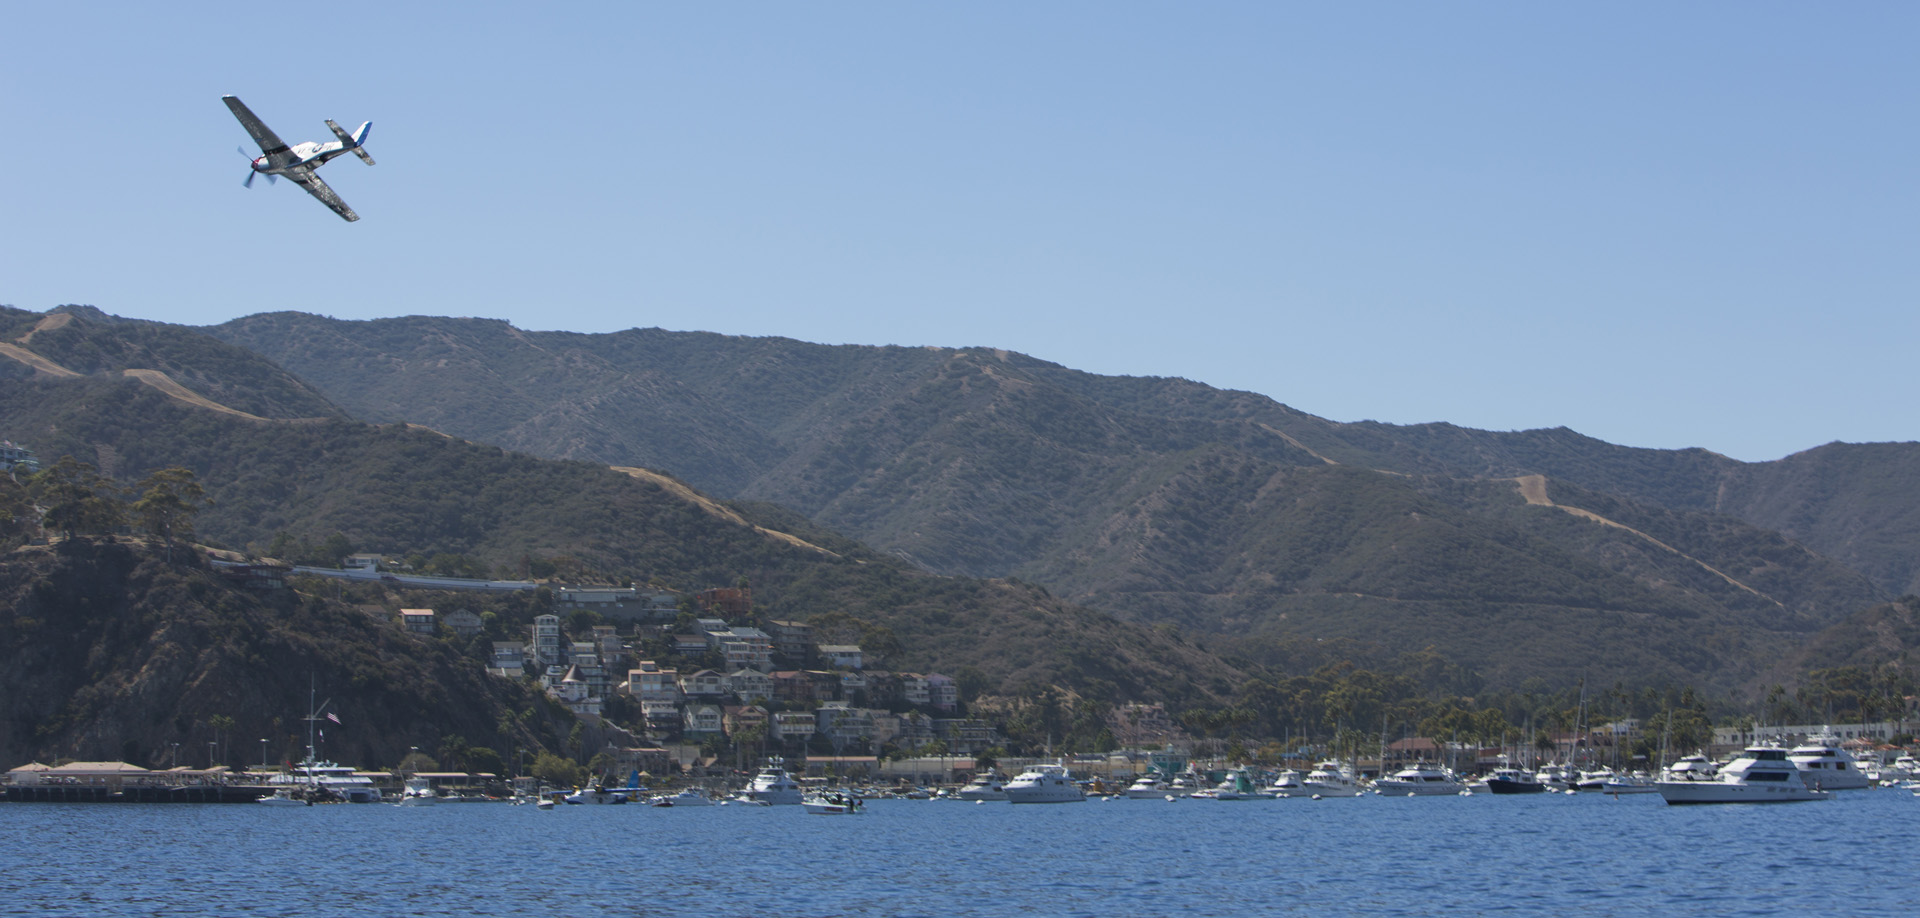 A P-51 Mustang flying over Avalon Harbor at the Catalina Air Show last year. (photo via Catalina Air Show)